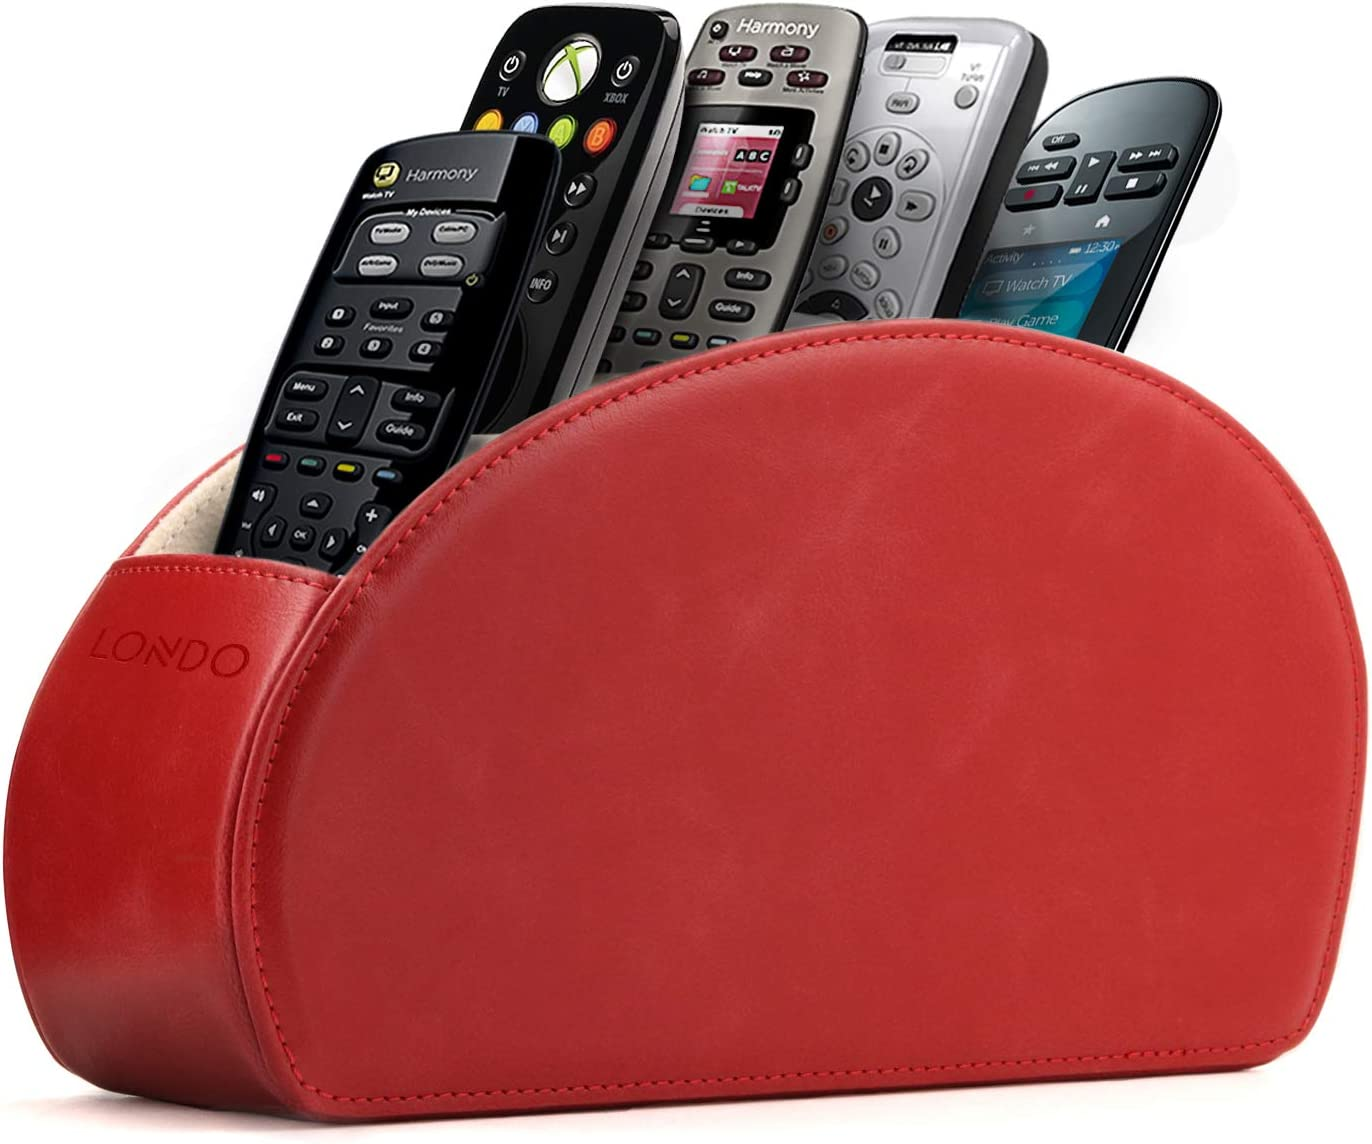 Londo - Leather Remote Control Holder Organizer with Suede Lining for DVD Blu-ray TV Roku or Apple TV Remotes (Leather, Red)